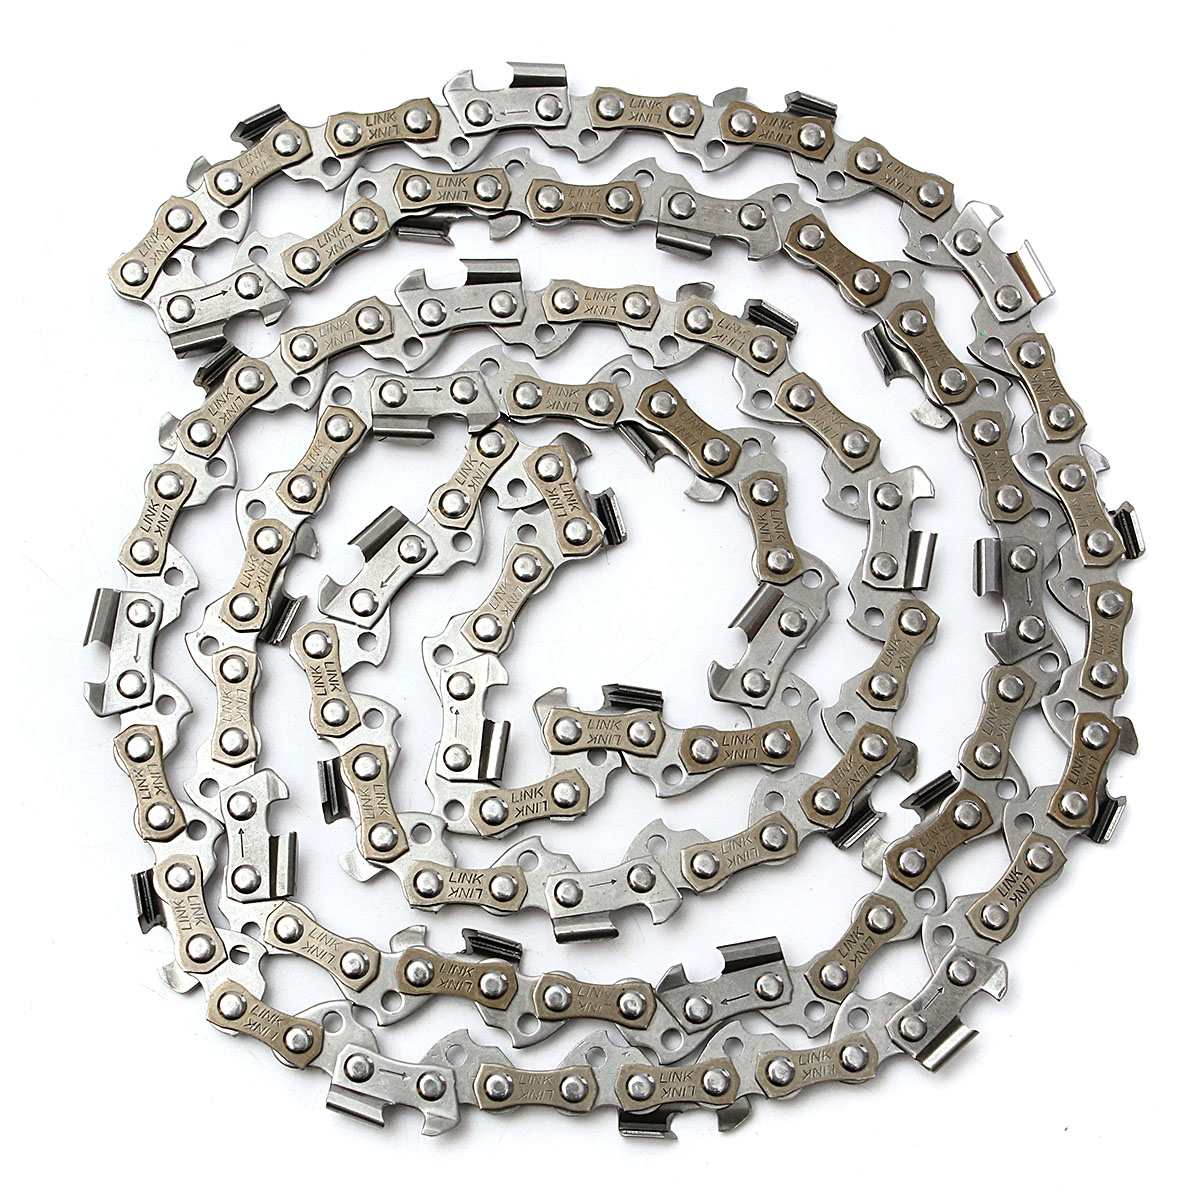 1PC 20 Chainsaw Saw Chain Blade 3/8LP 050 Gauge 70DL Chain Accessory Part promotion sale china production quality 1pc 20 guide bar 1pc 20 chain pitch 3 8 0063 72link for chainsaw ms 380 381